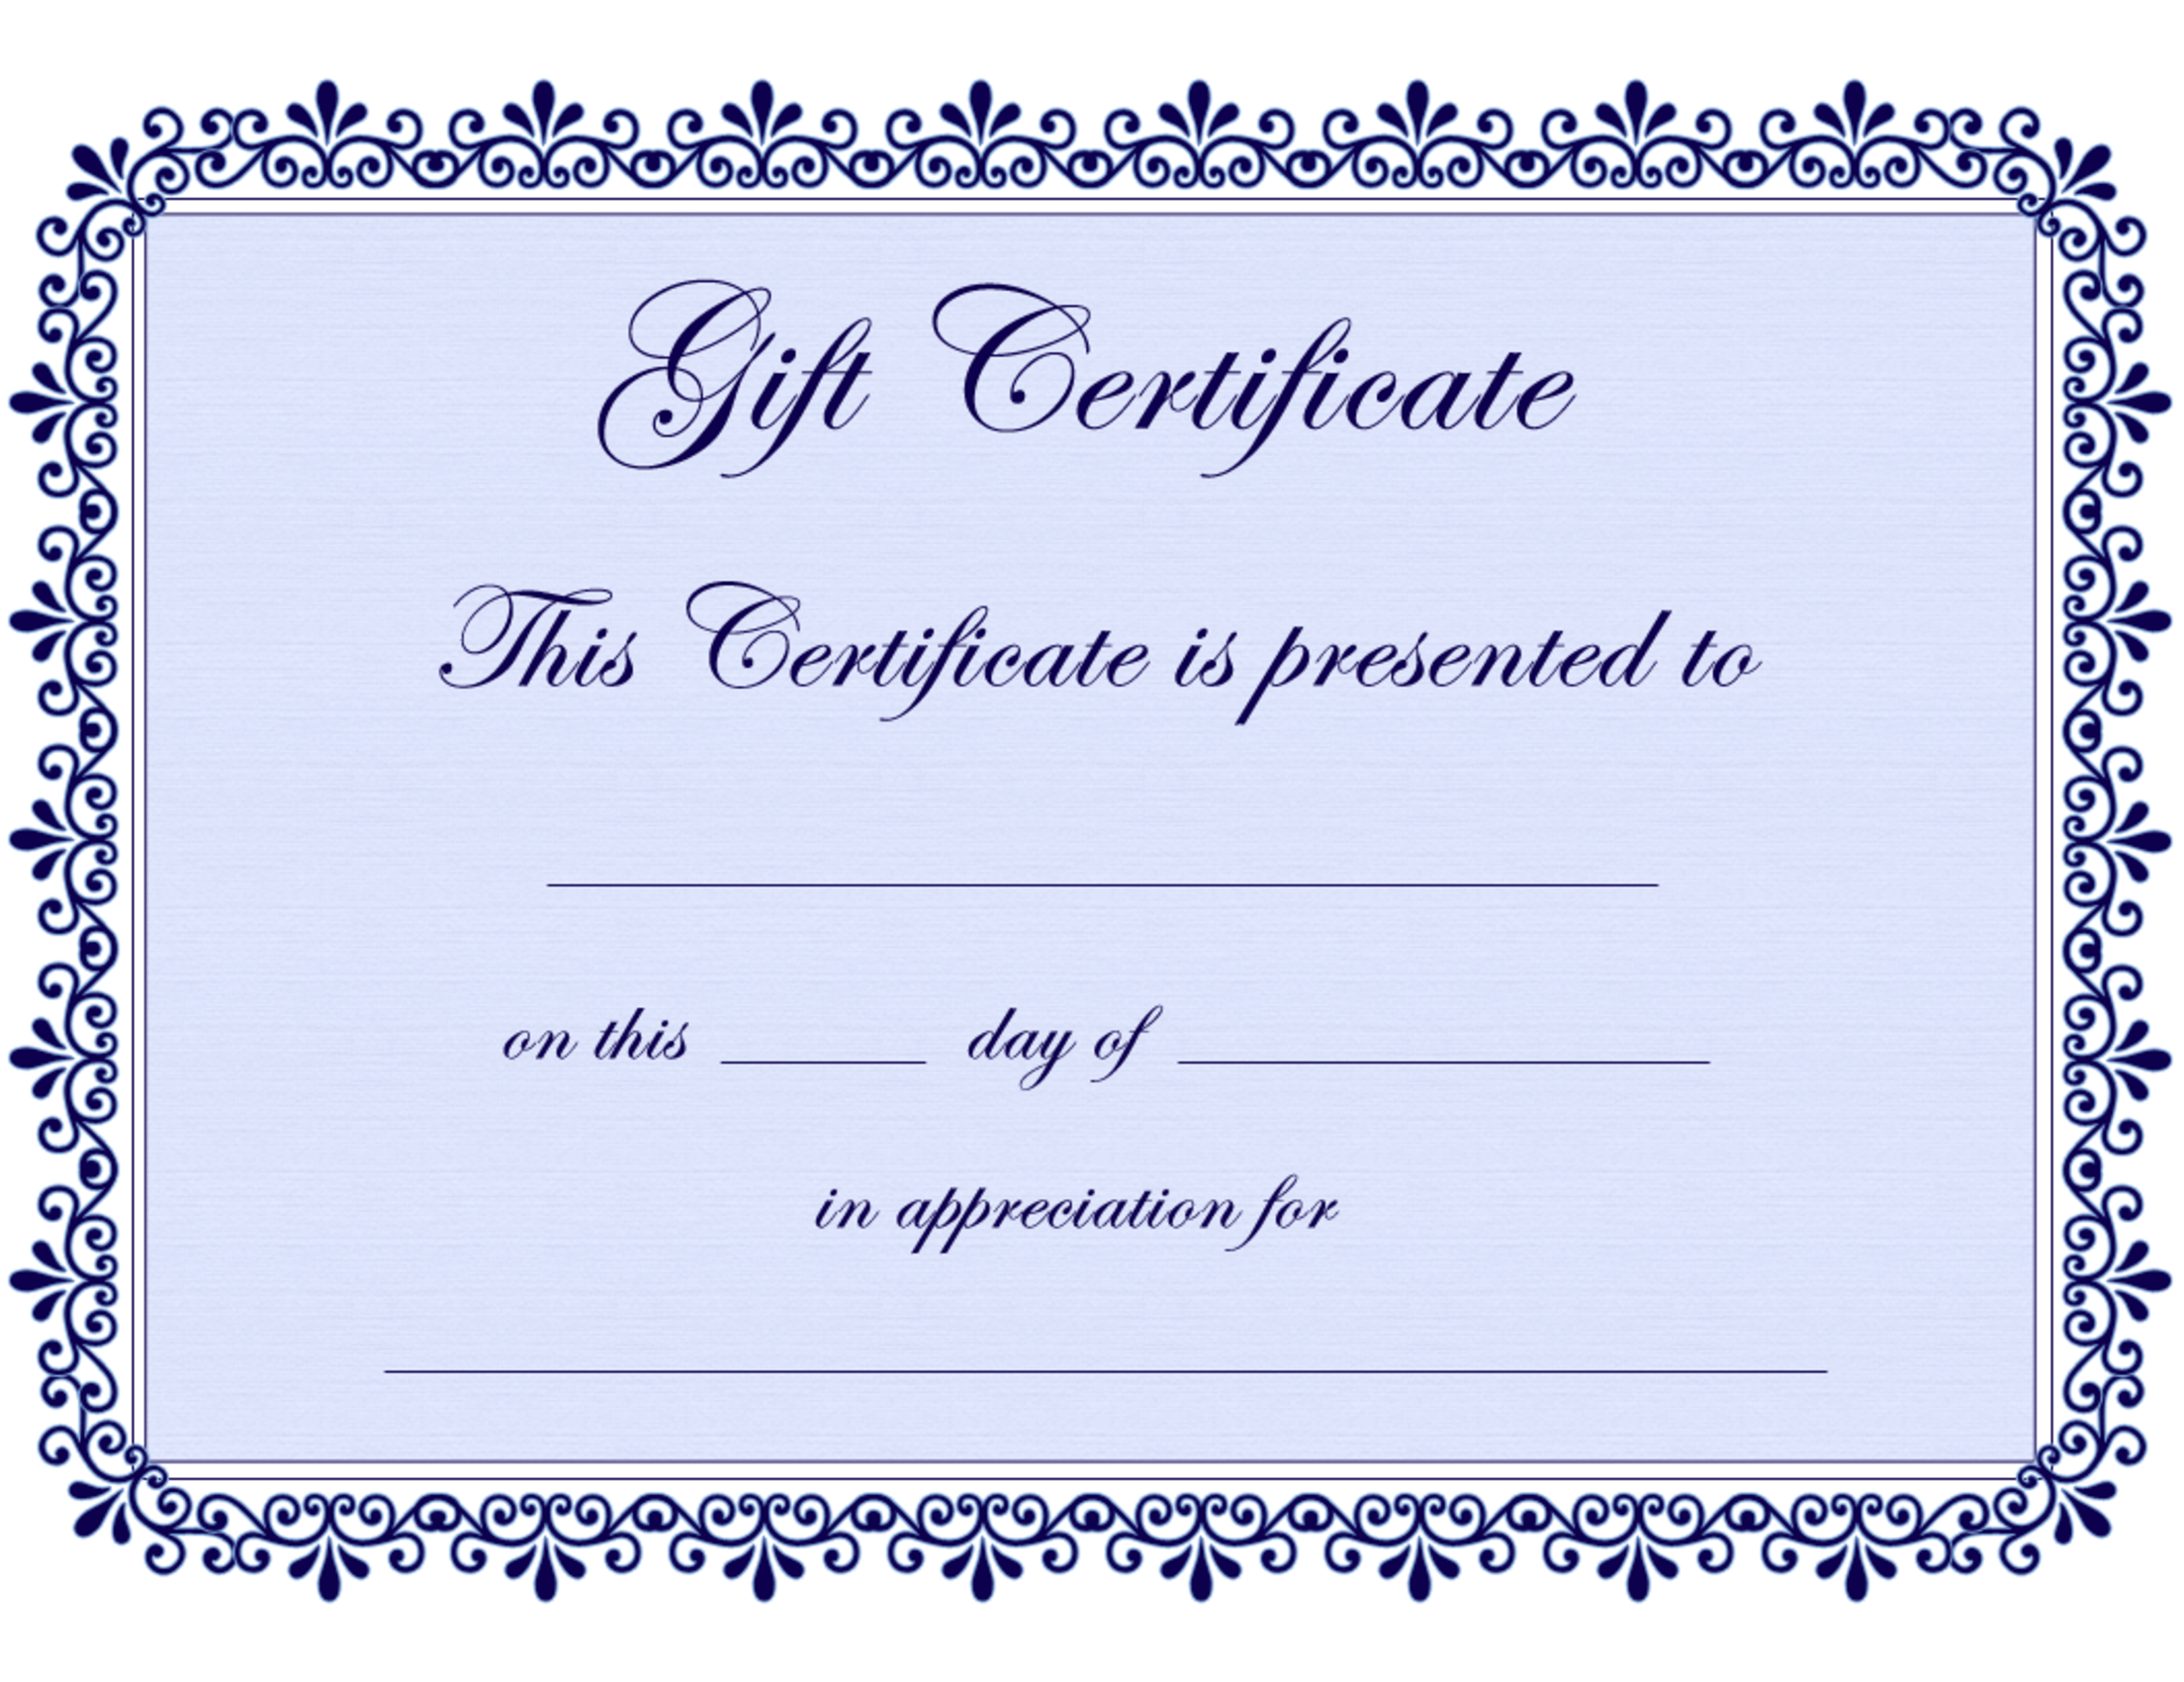 Certificate templates gift certificate template free for Free downloadable gift certificate templates